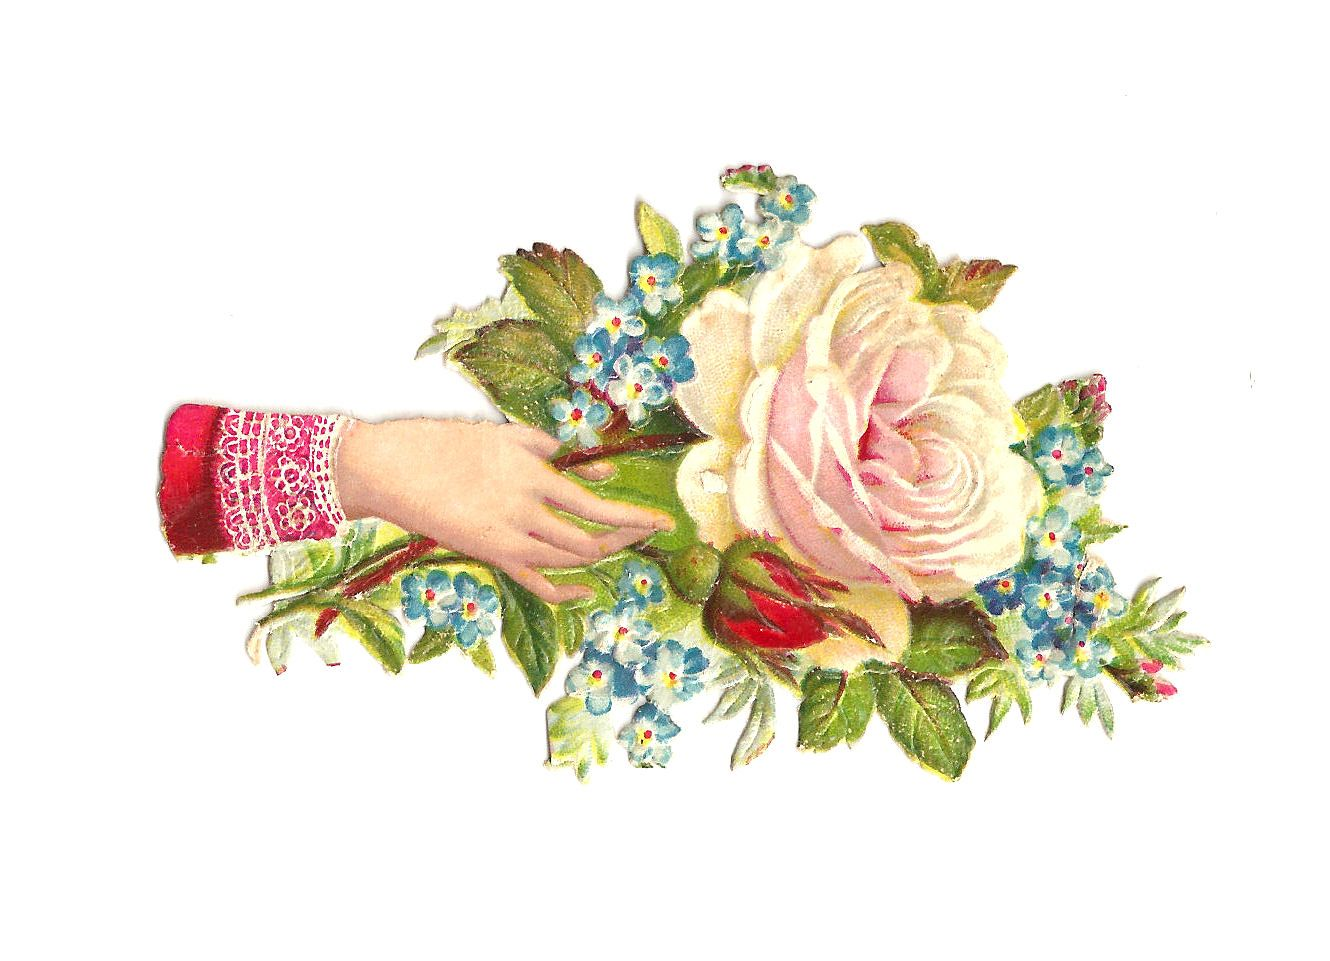 Antique Images: Free Rose Clip Art: White Rose Victorian Scrap Hand Whimsy with Blue Forget-Me-Not Flowers